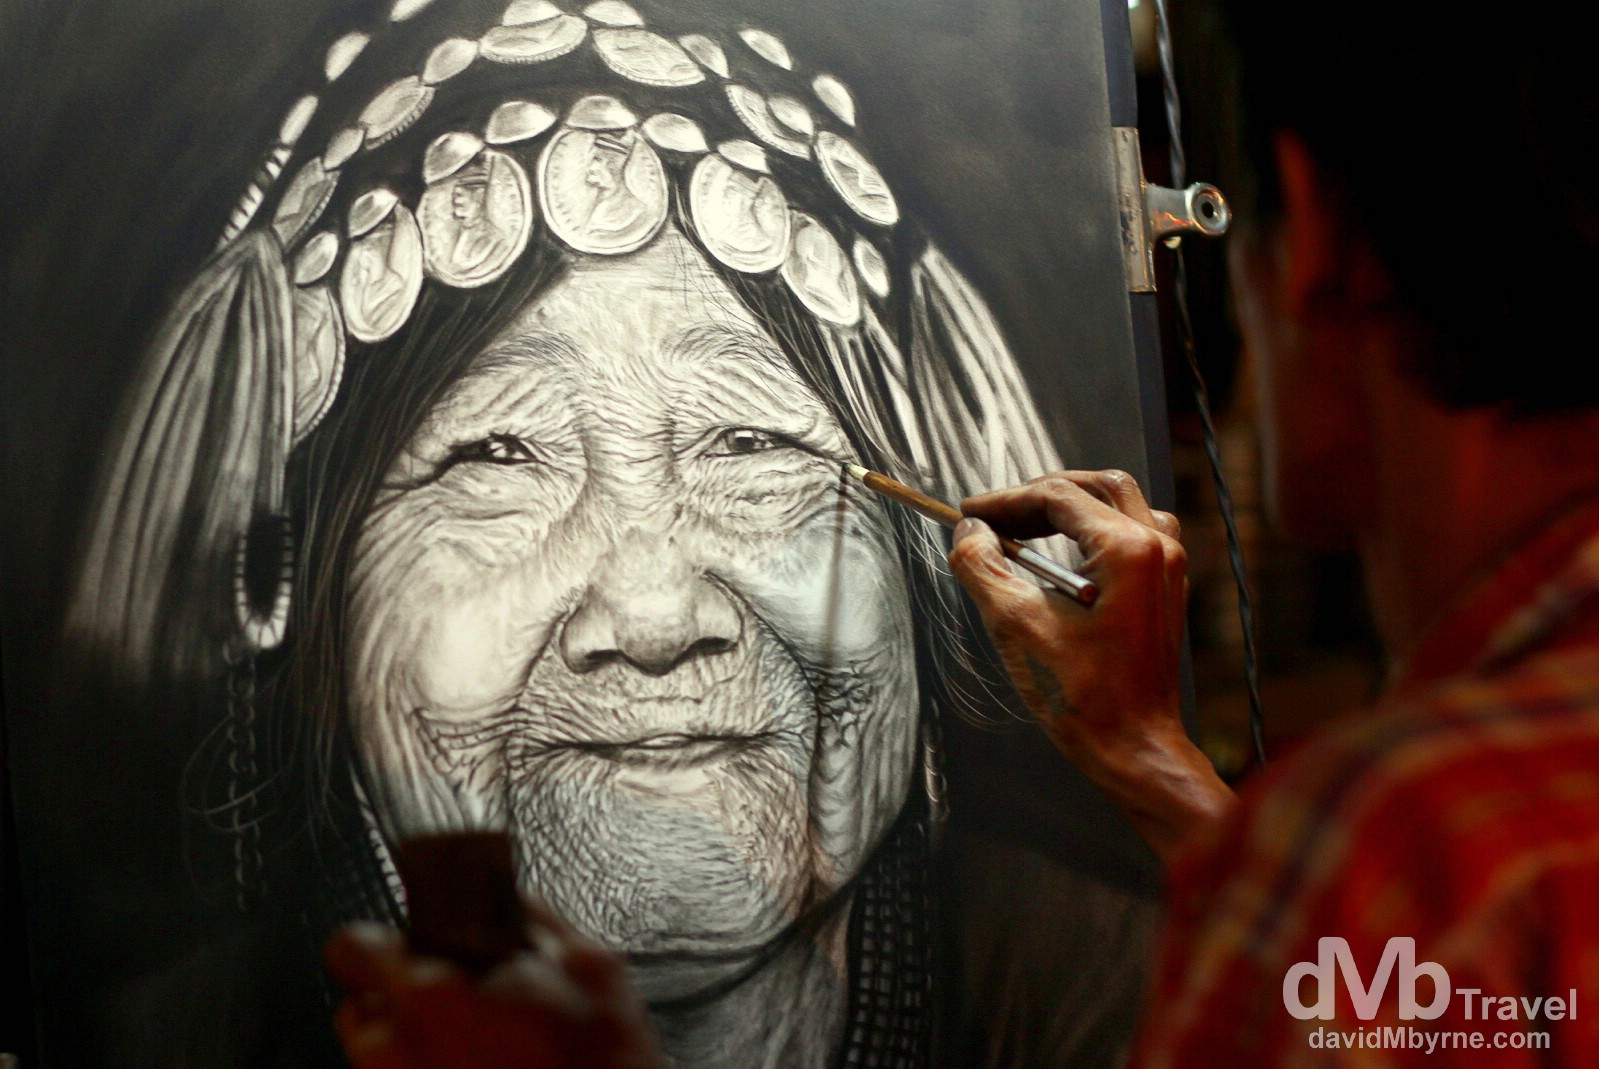 An artist putting the final touches to a piece of work in the Night Market, Chiang Mai, northern Thailand. March 9th 2012.